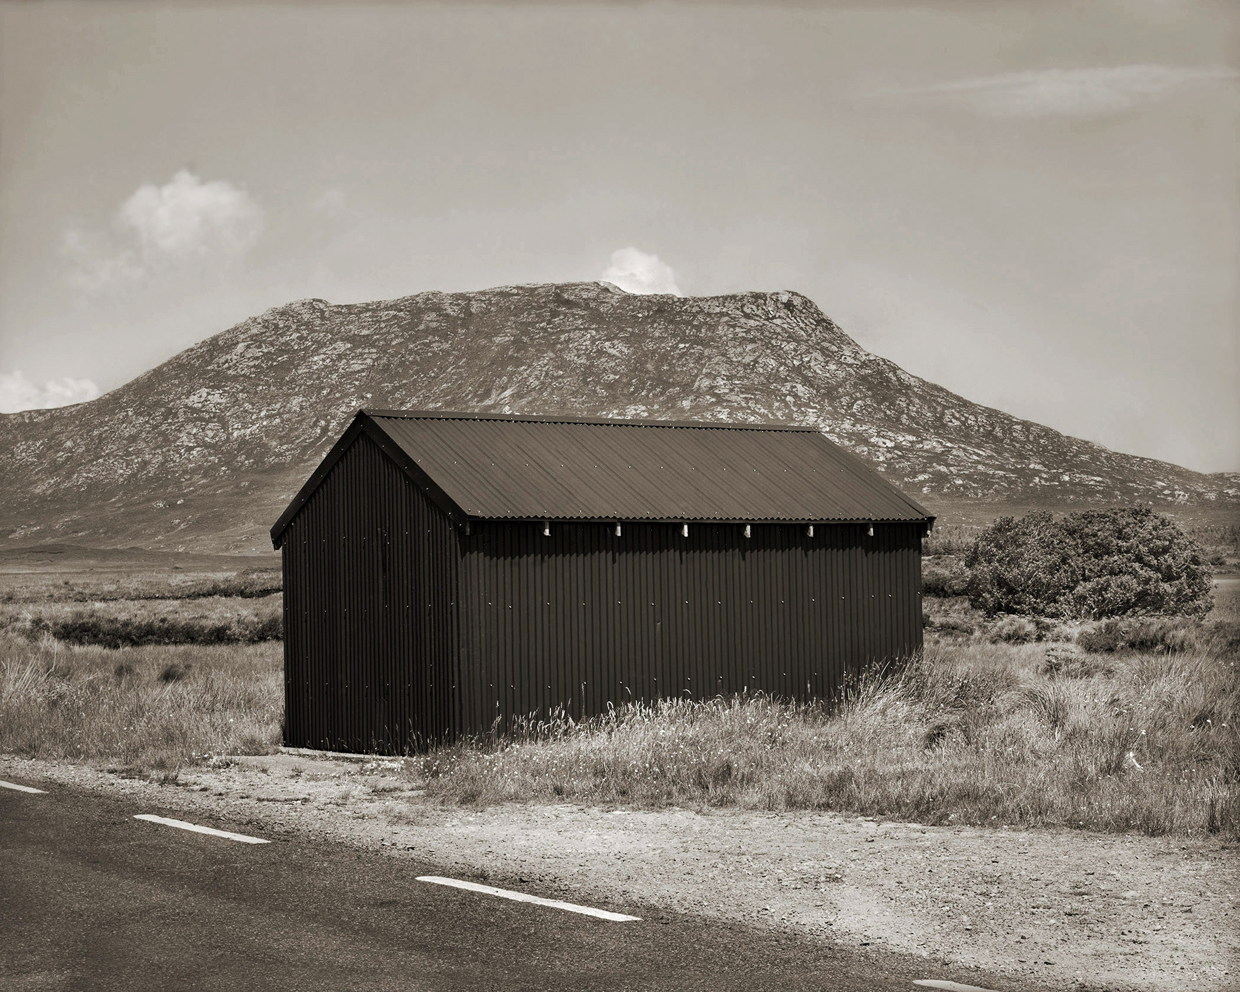 Untitled (Green Barn), 2005, Edition 4/6, Platinum print, 52,1 x 59,1 cm — Galerie Éric Hussenot, Paris